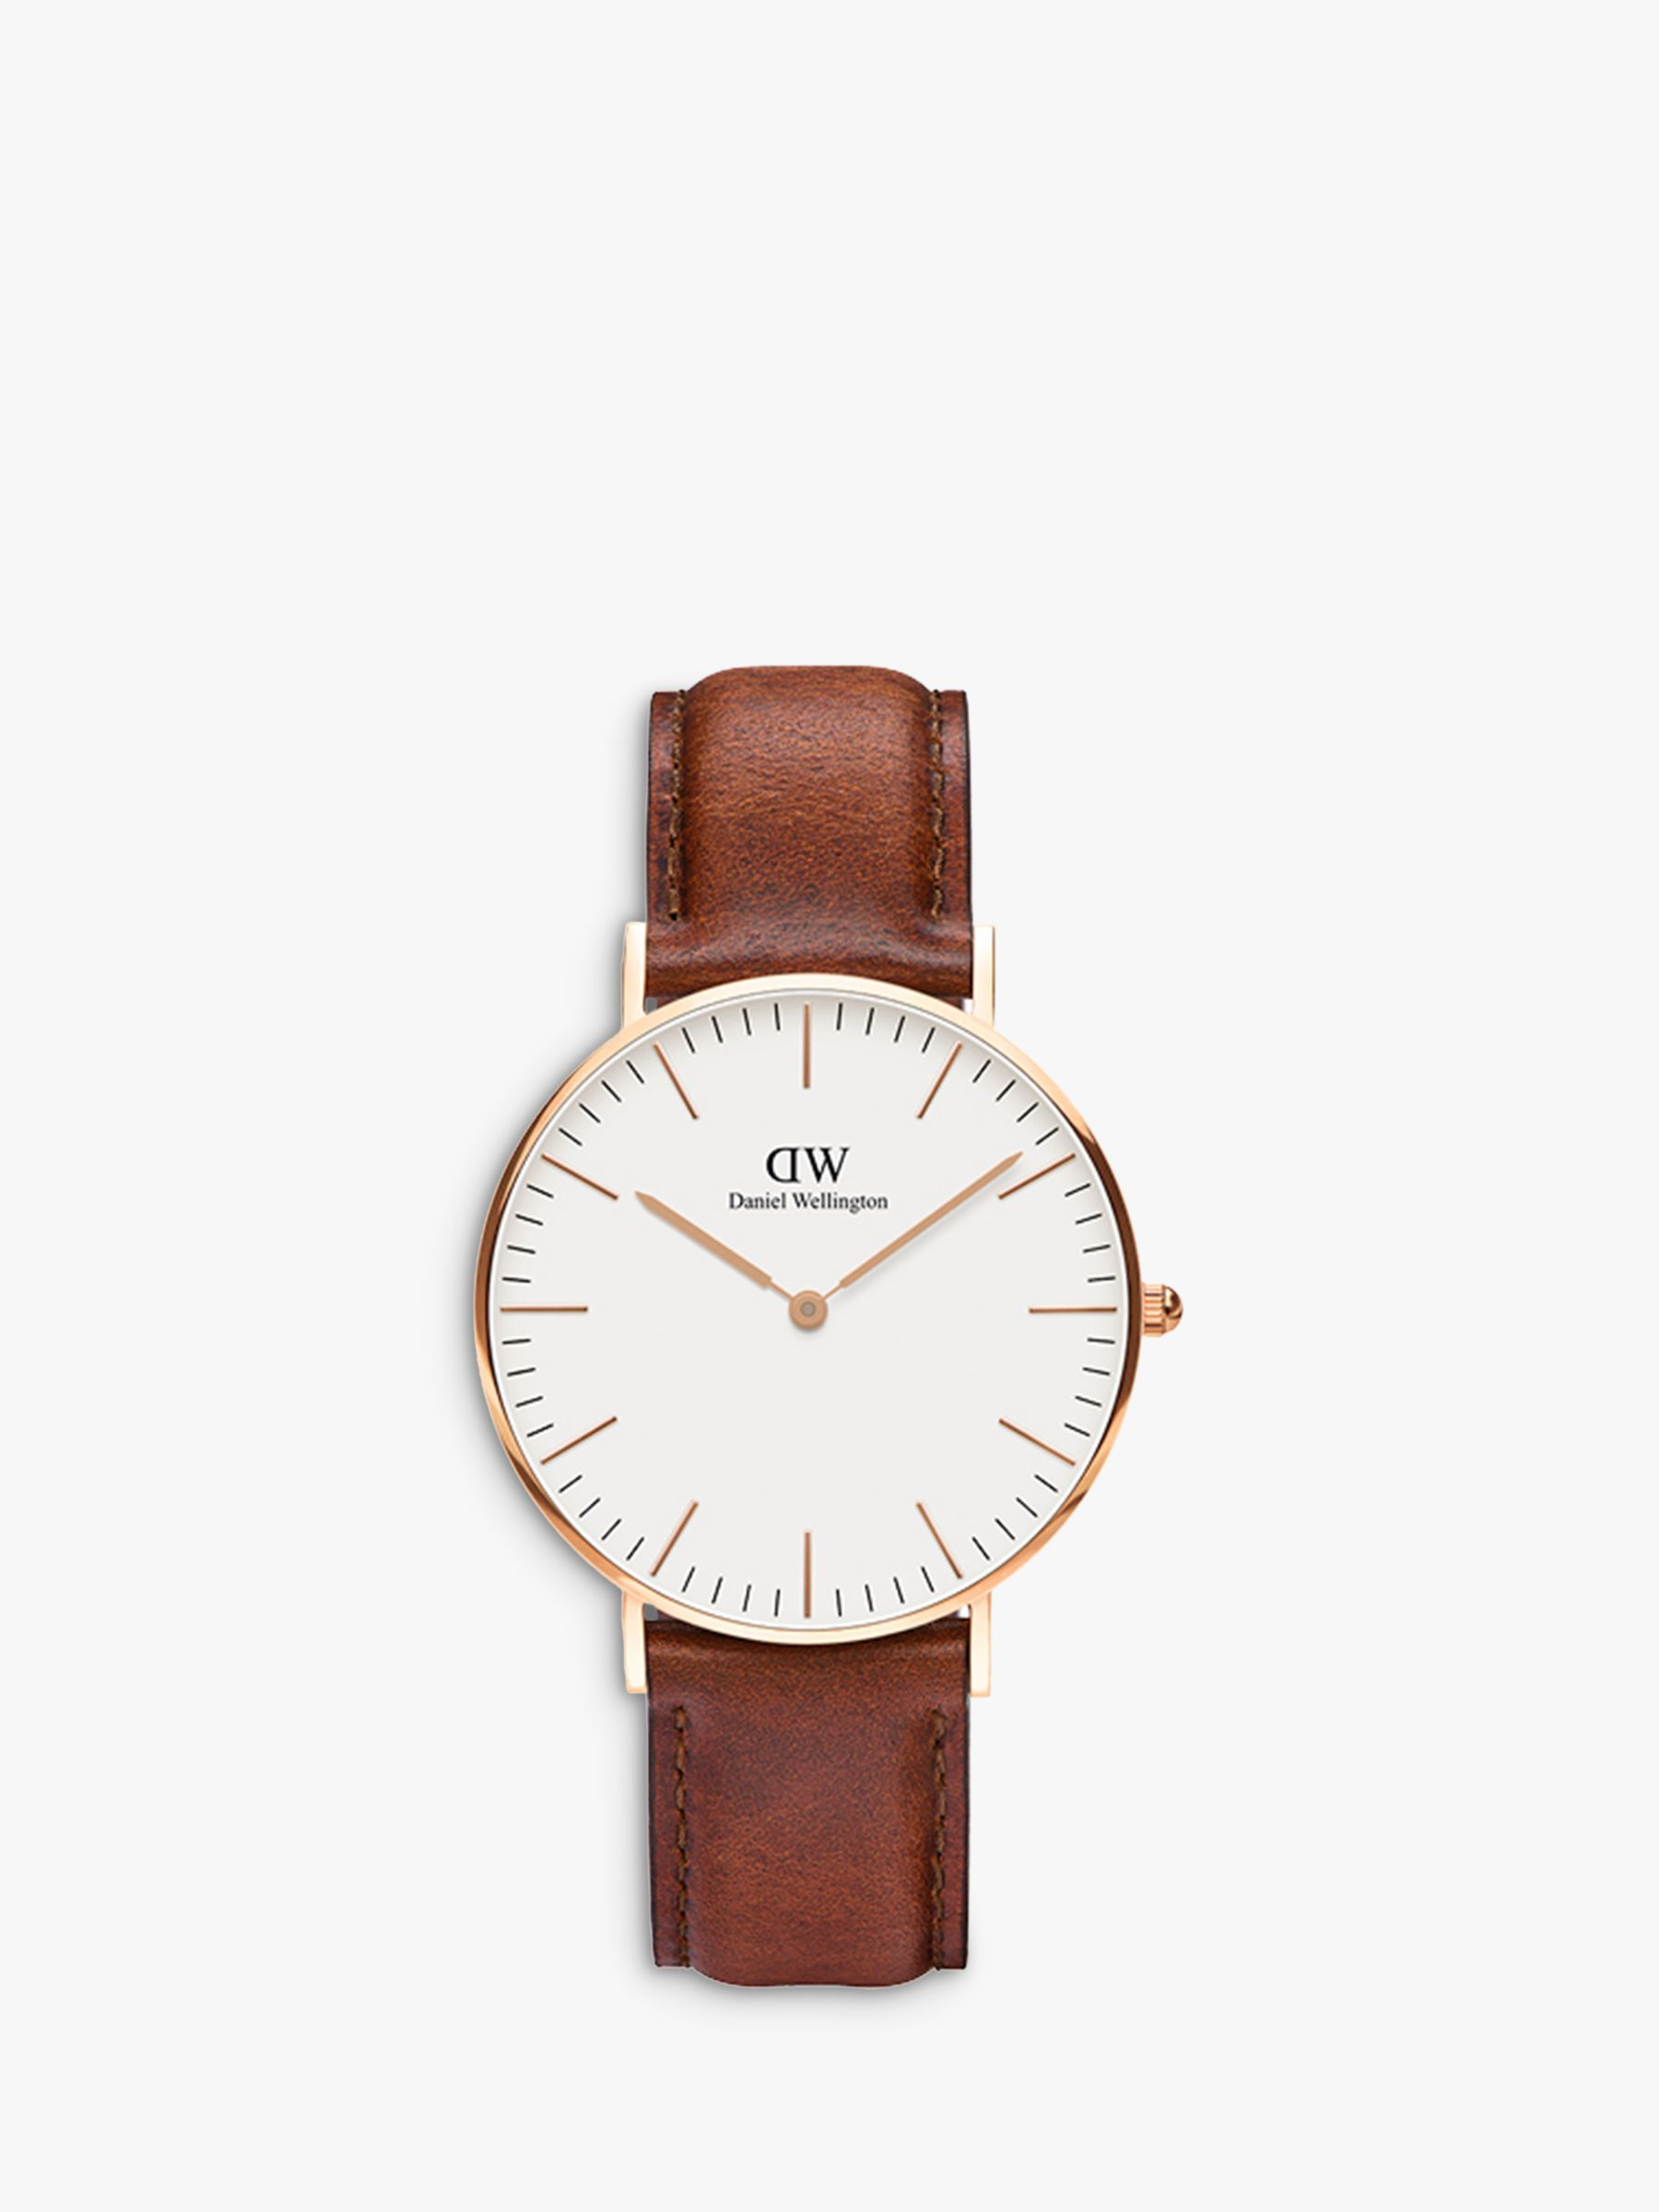 Daniel Wellington Daniel Wellington 0510DW Women's 36mm Sheffield Leather Strap Watch, Brown/White